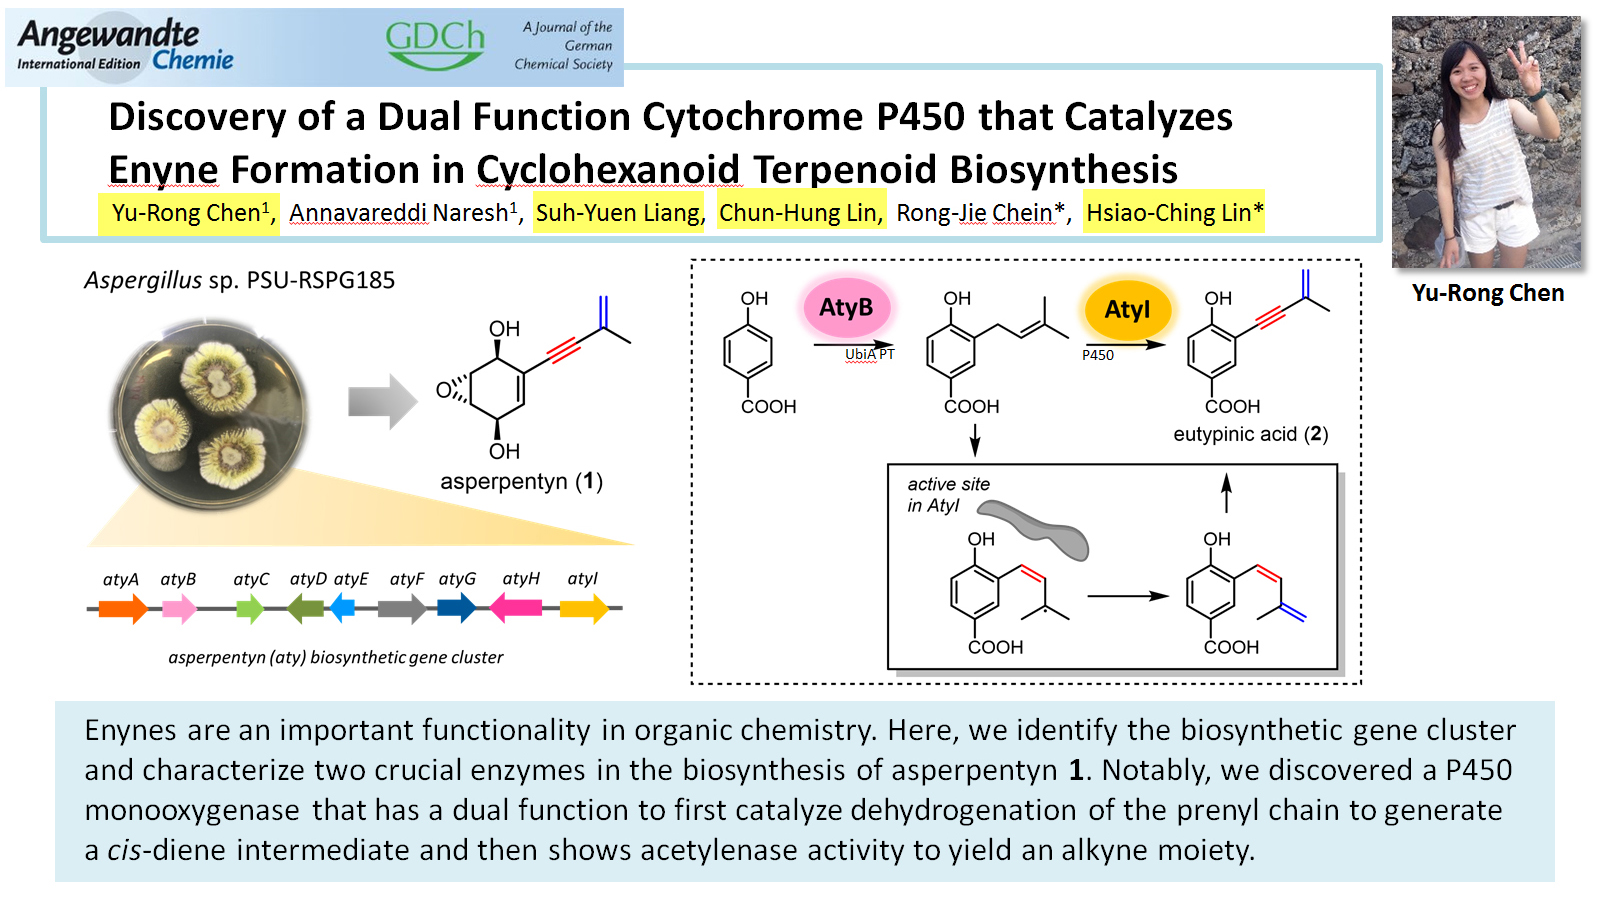 Discovery of a Dual Function Cytochrome P450 that Catalyzes Enyne Formation in Cyclohexanoid Terpenoid Biosynthesis